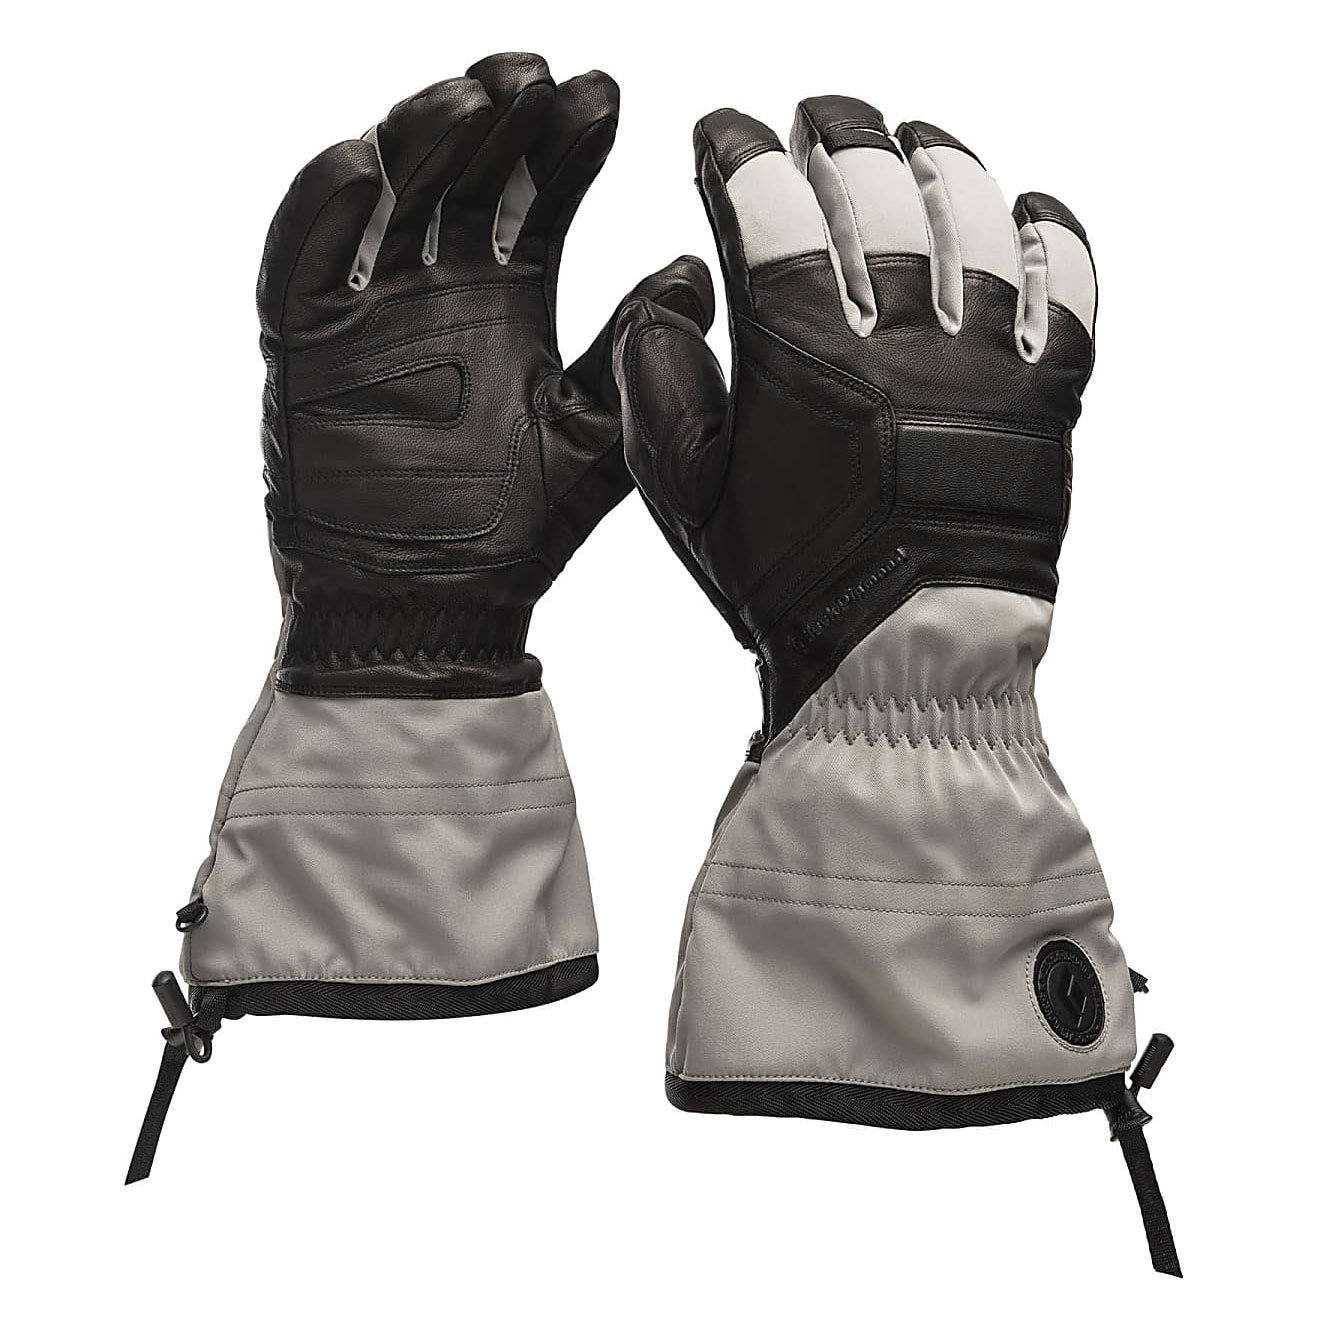 Best Ice Climbing Gloves 2020